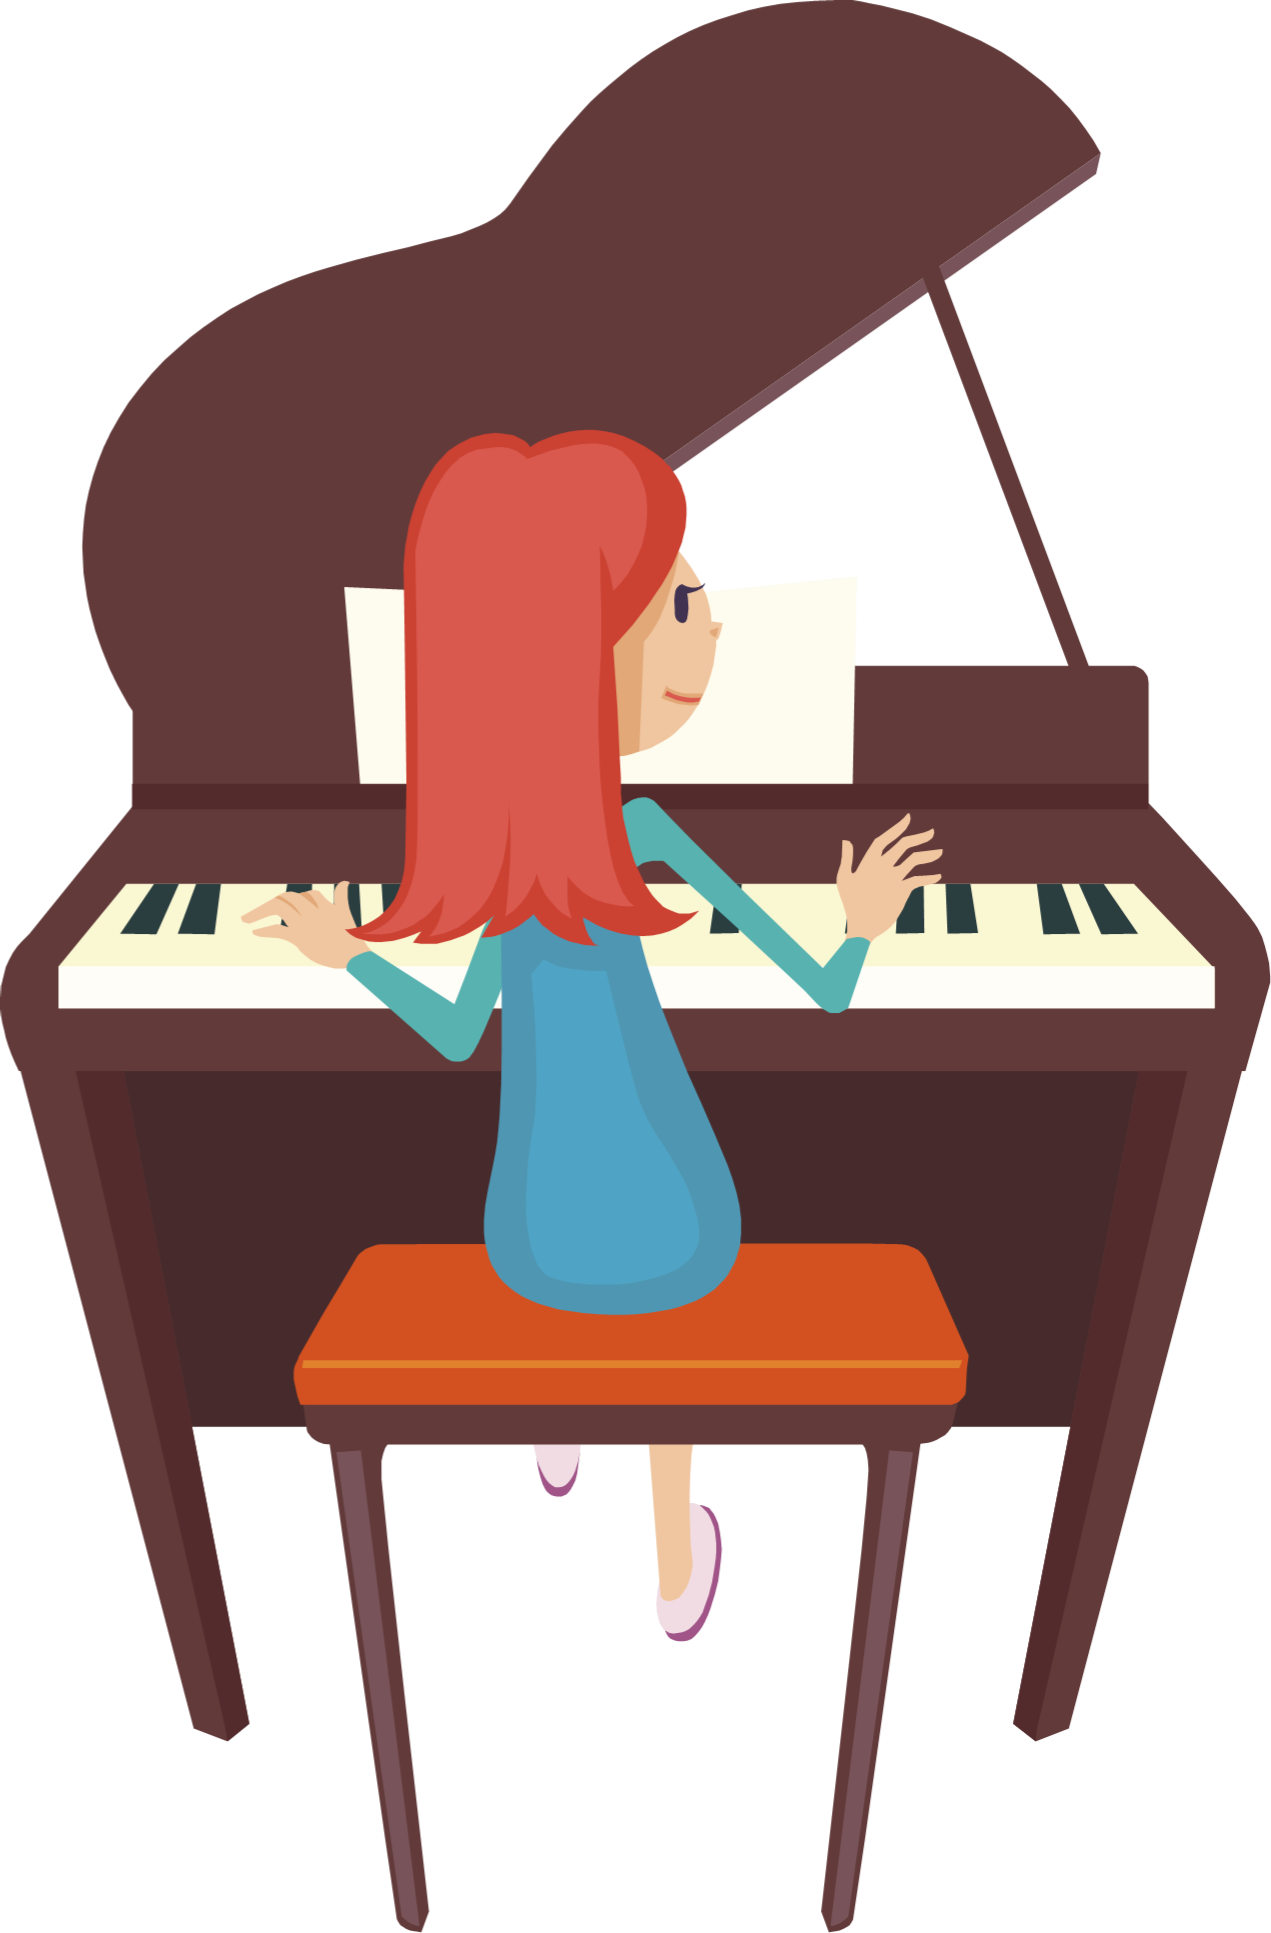 Piano lesson clipart jpg royalty free Free Piano Lessons Cliparts, Download Free Clip Art, Free ... jpg royalty free